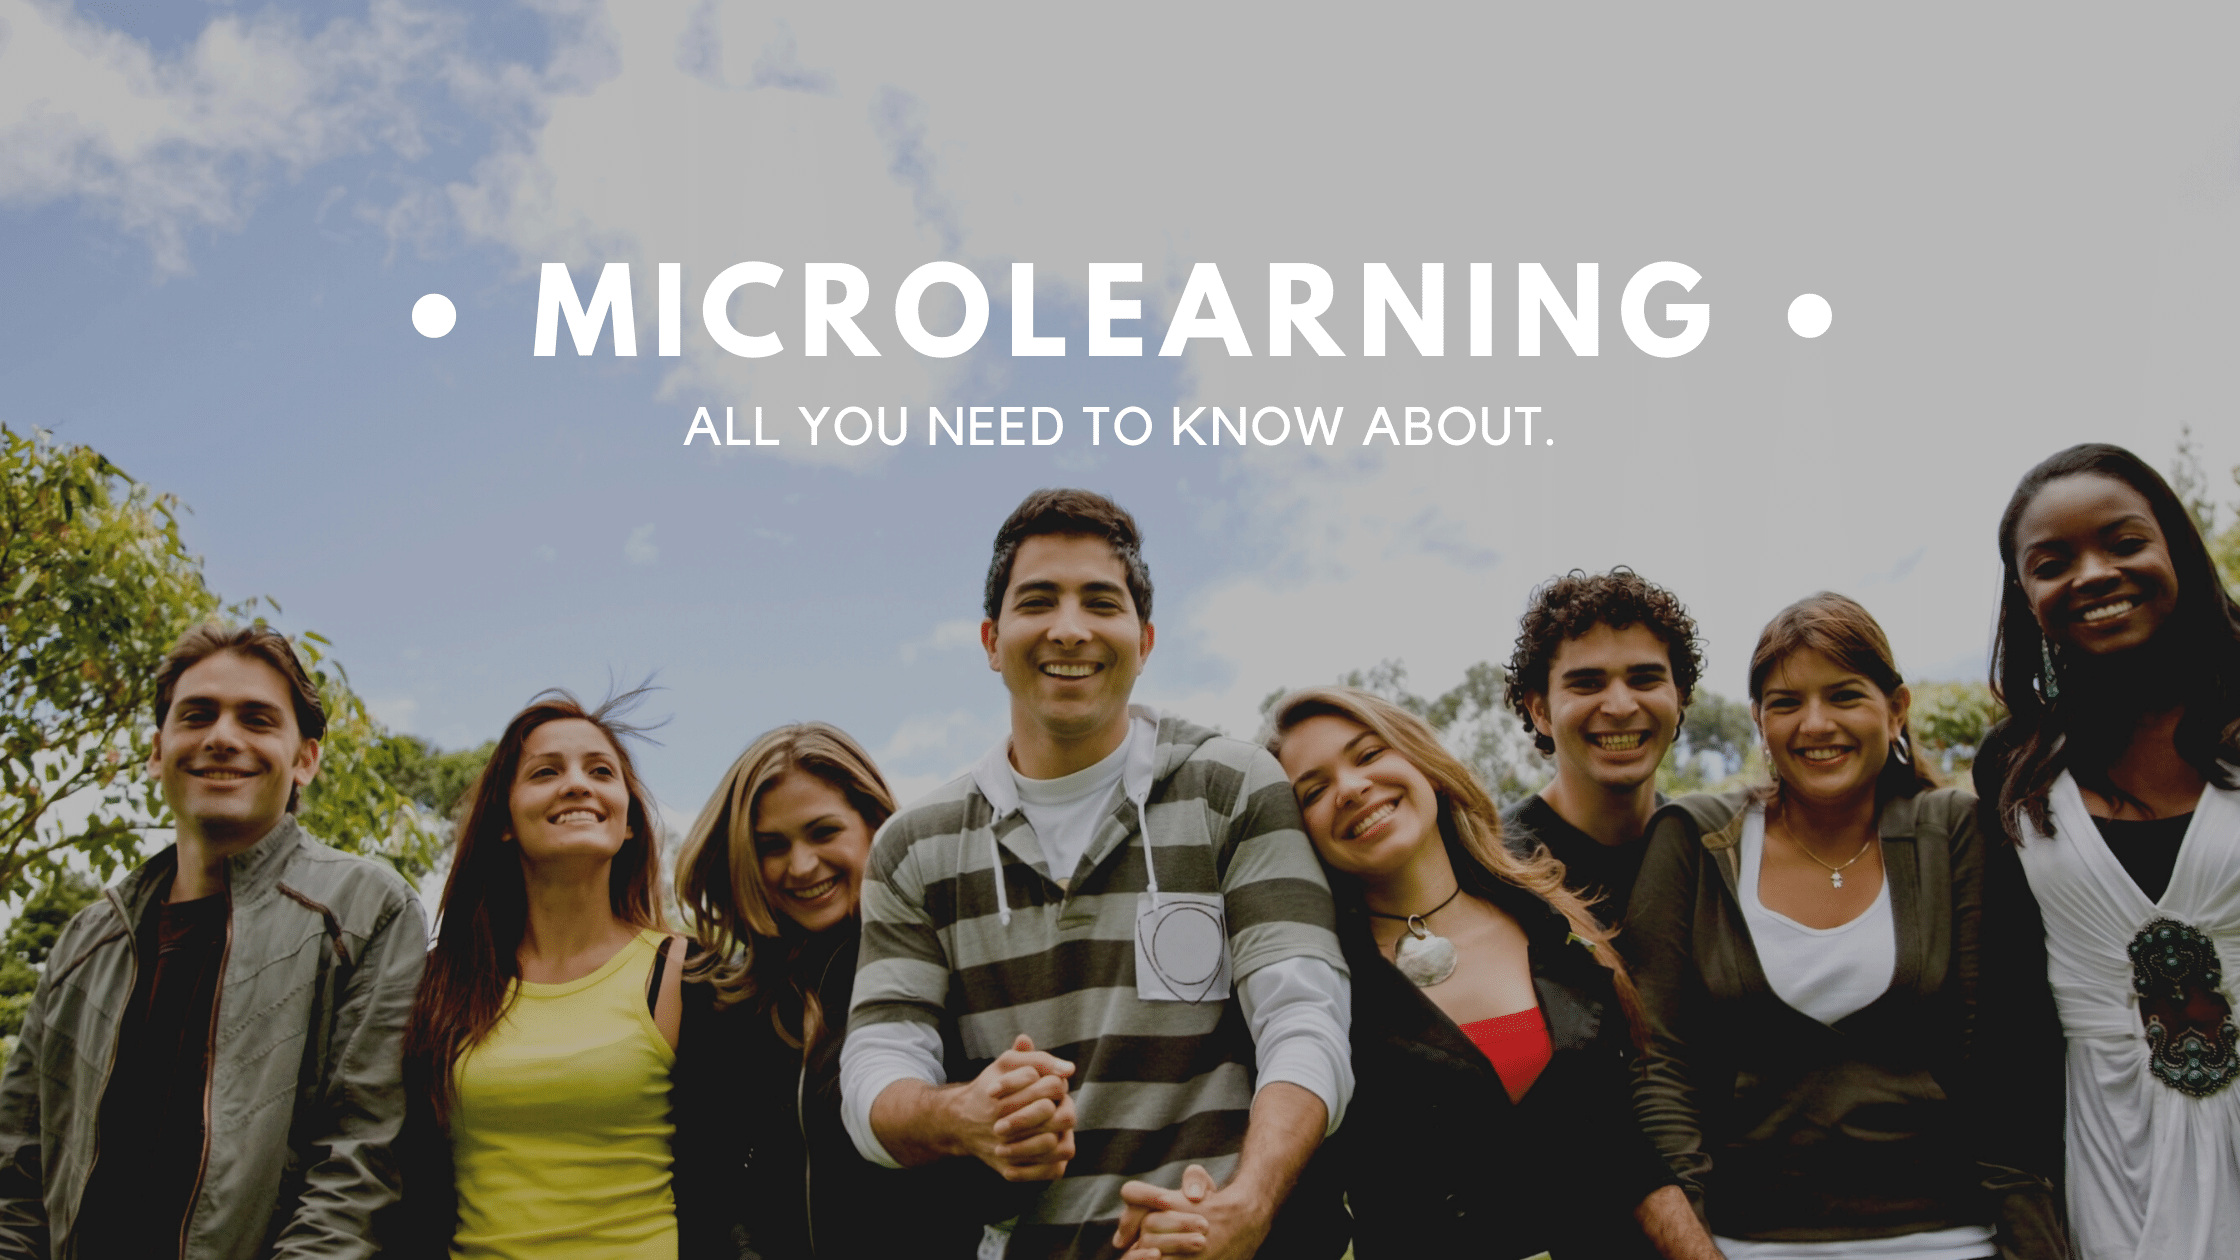 All You Need To Know About Microlearning